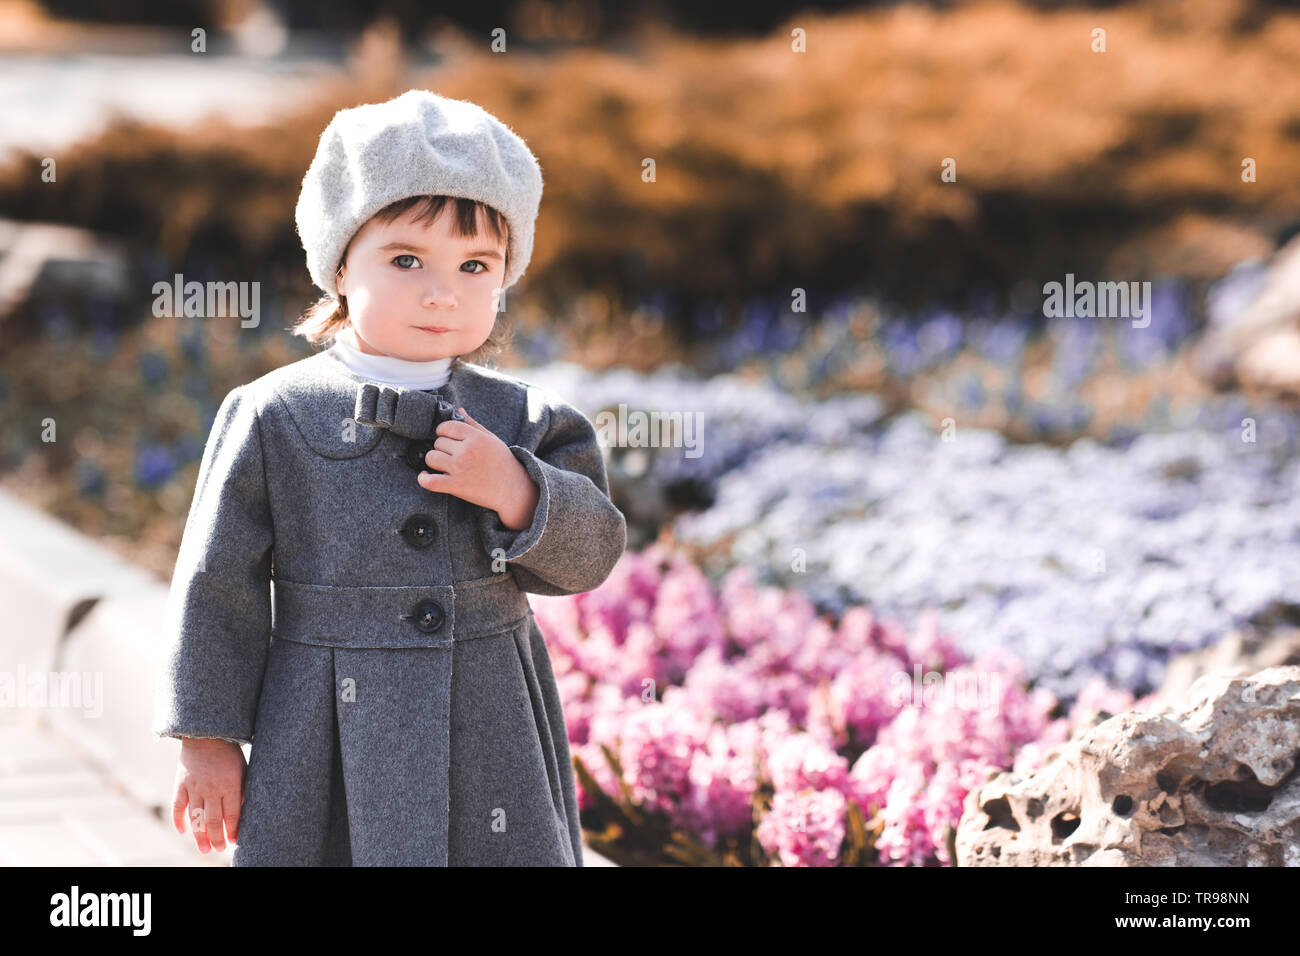 8fe7d0e97 Baby Girl 1 2 Year Old Stock Photos & Baby Girl 1 2 Year Old Stock ...